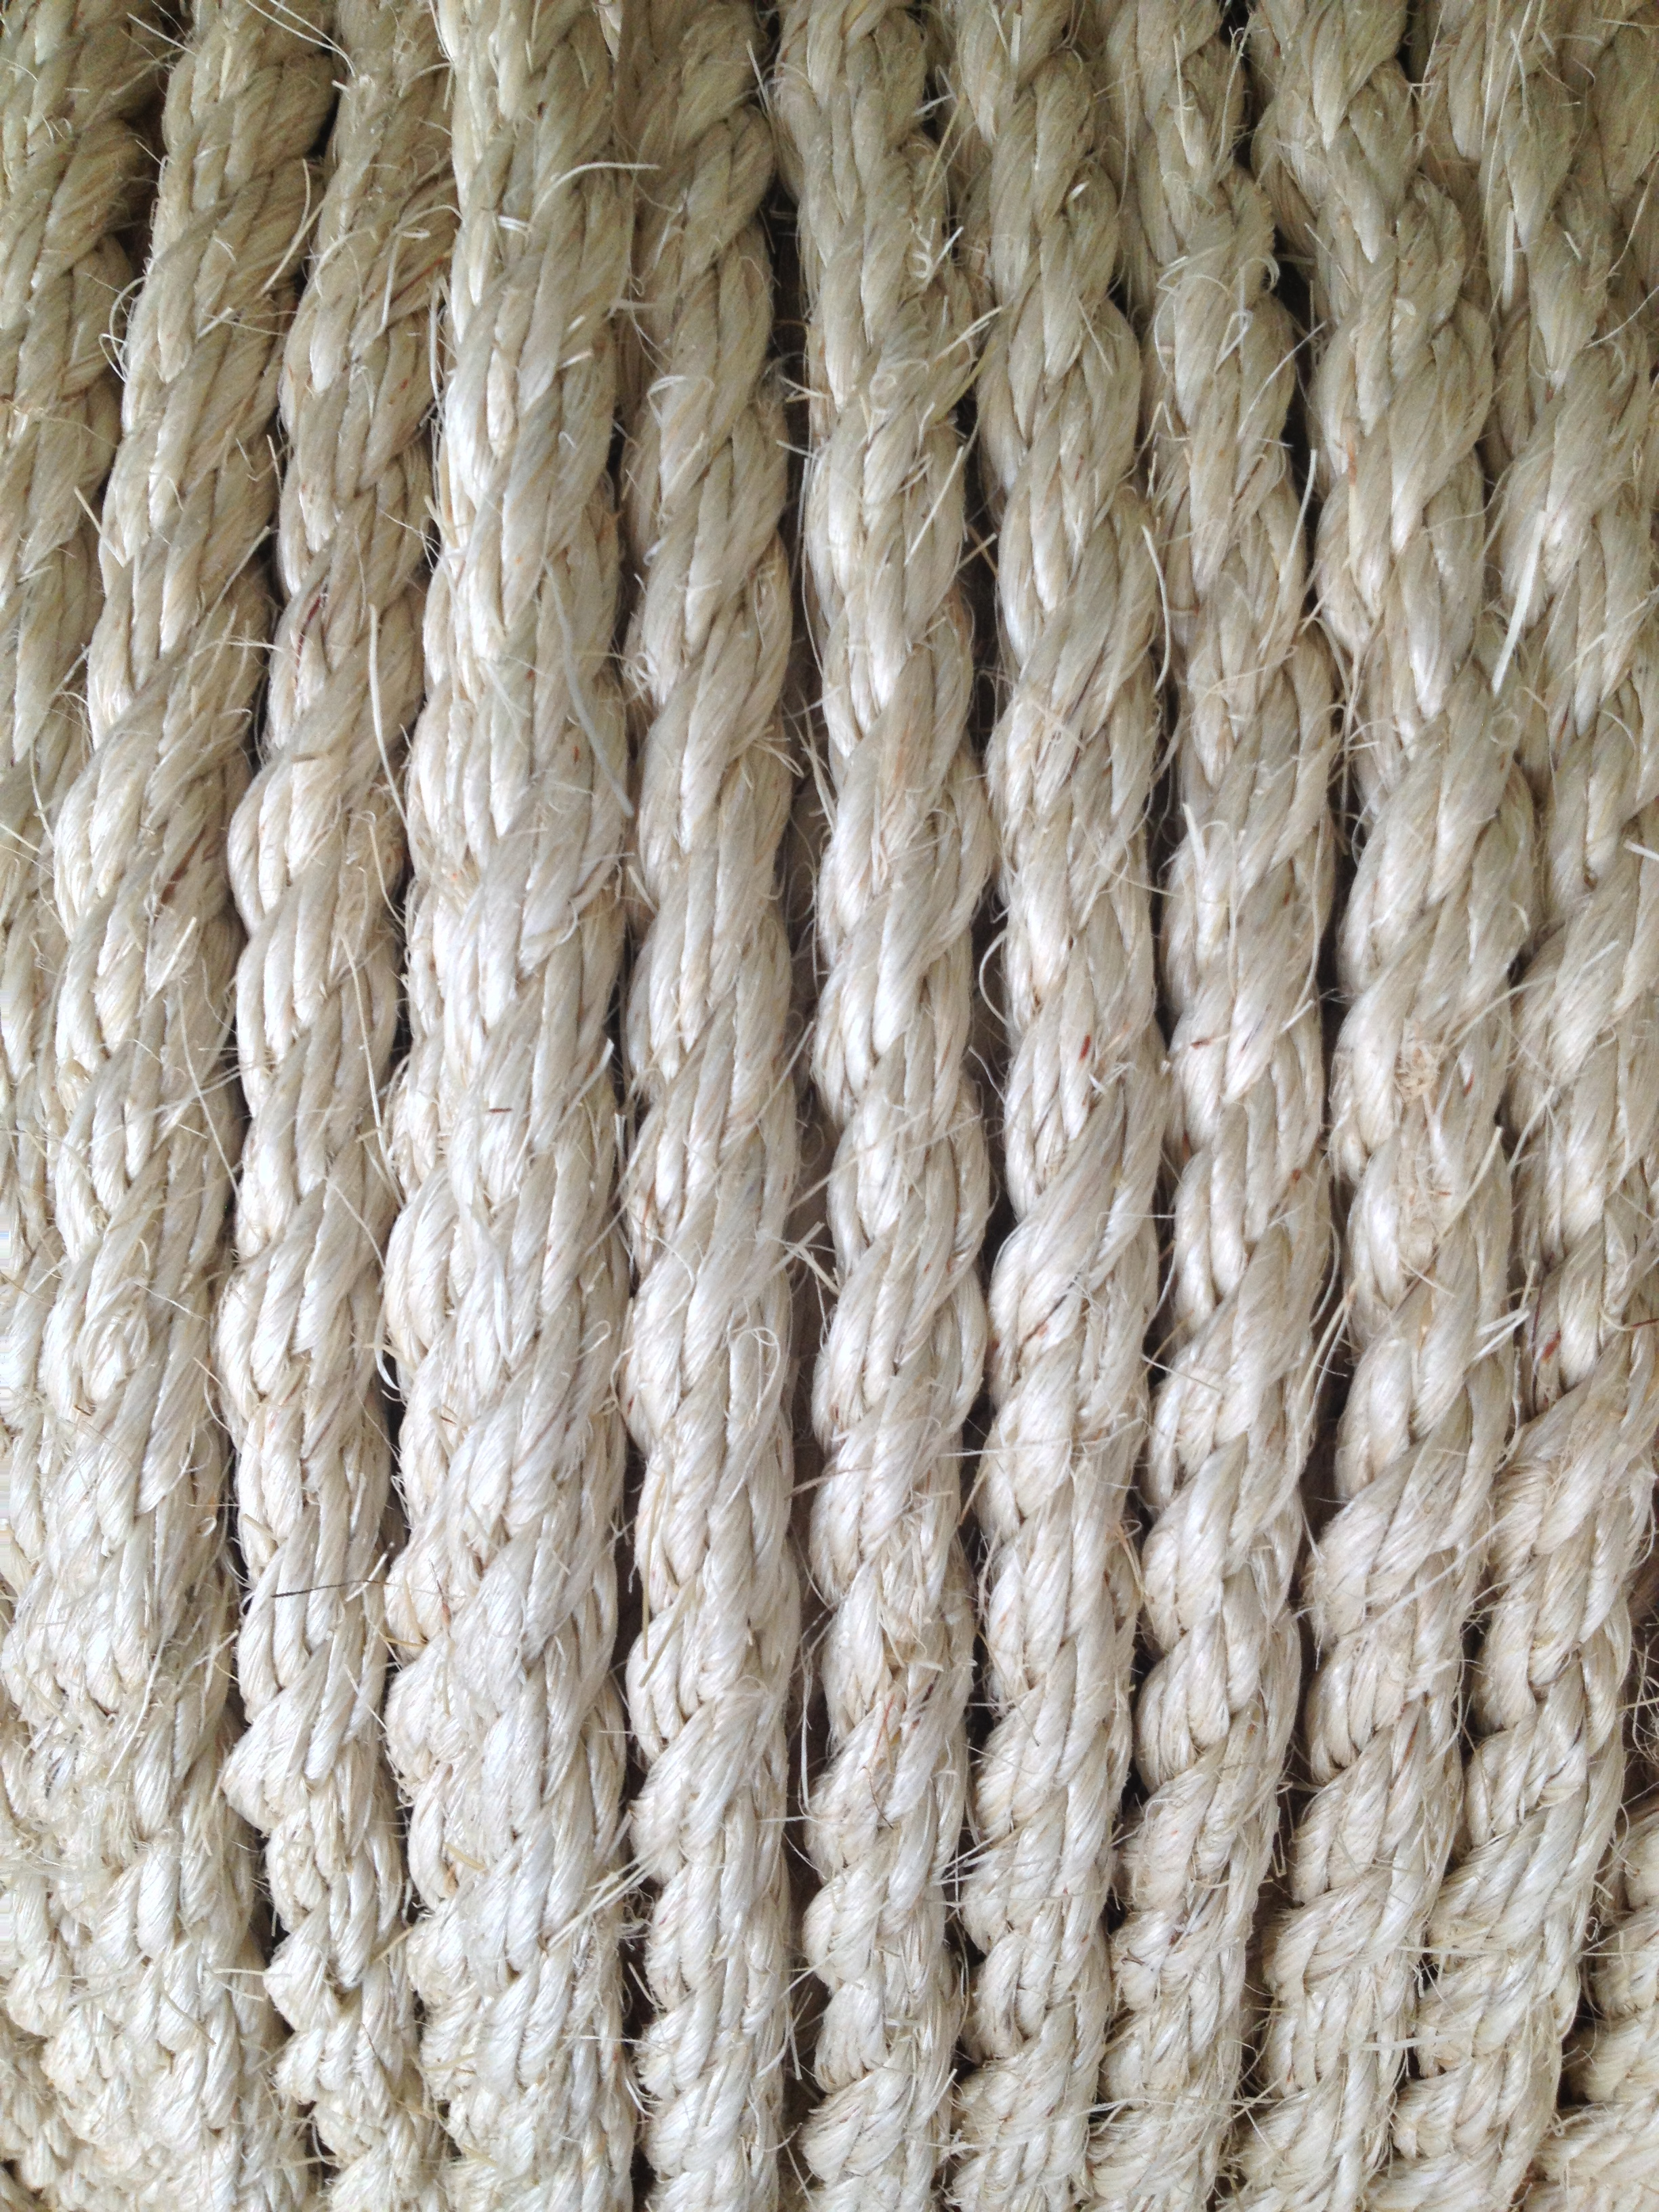 This is sisal rope